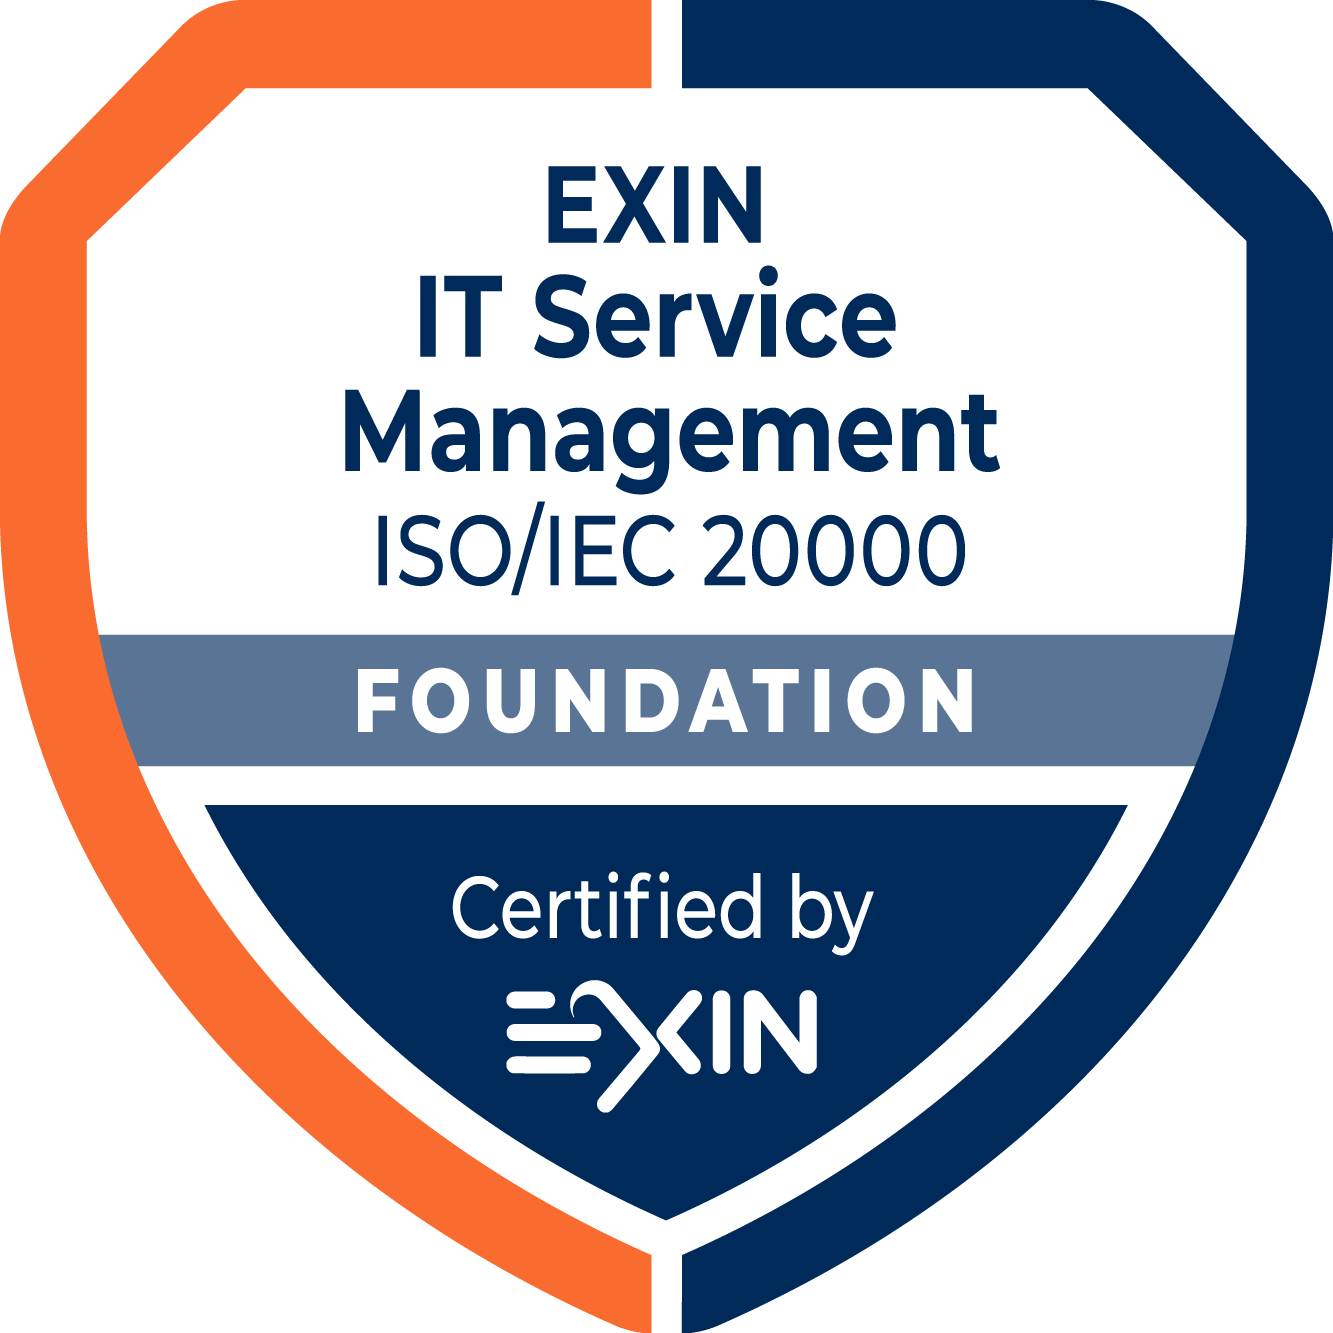 EXIN IT Service Management Foundation based on ISO/IEC 20000:2011